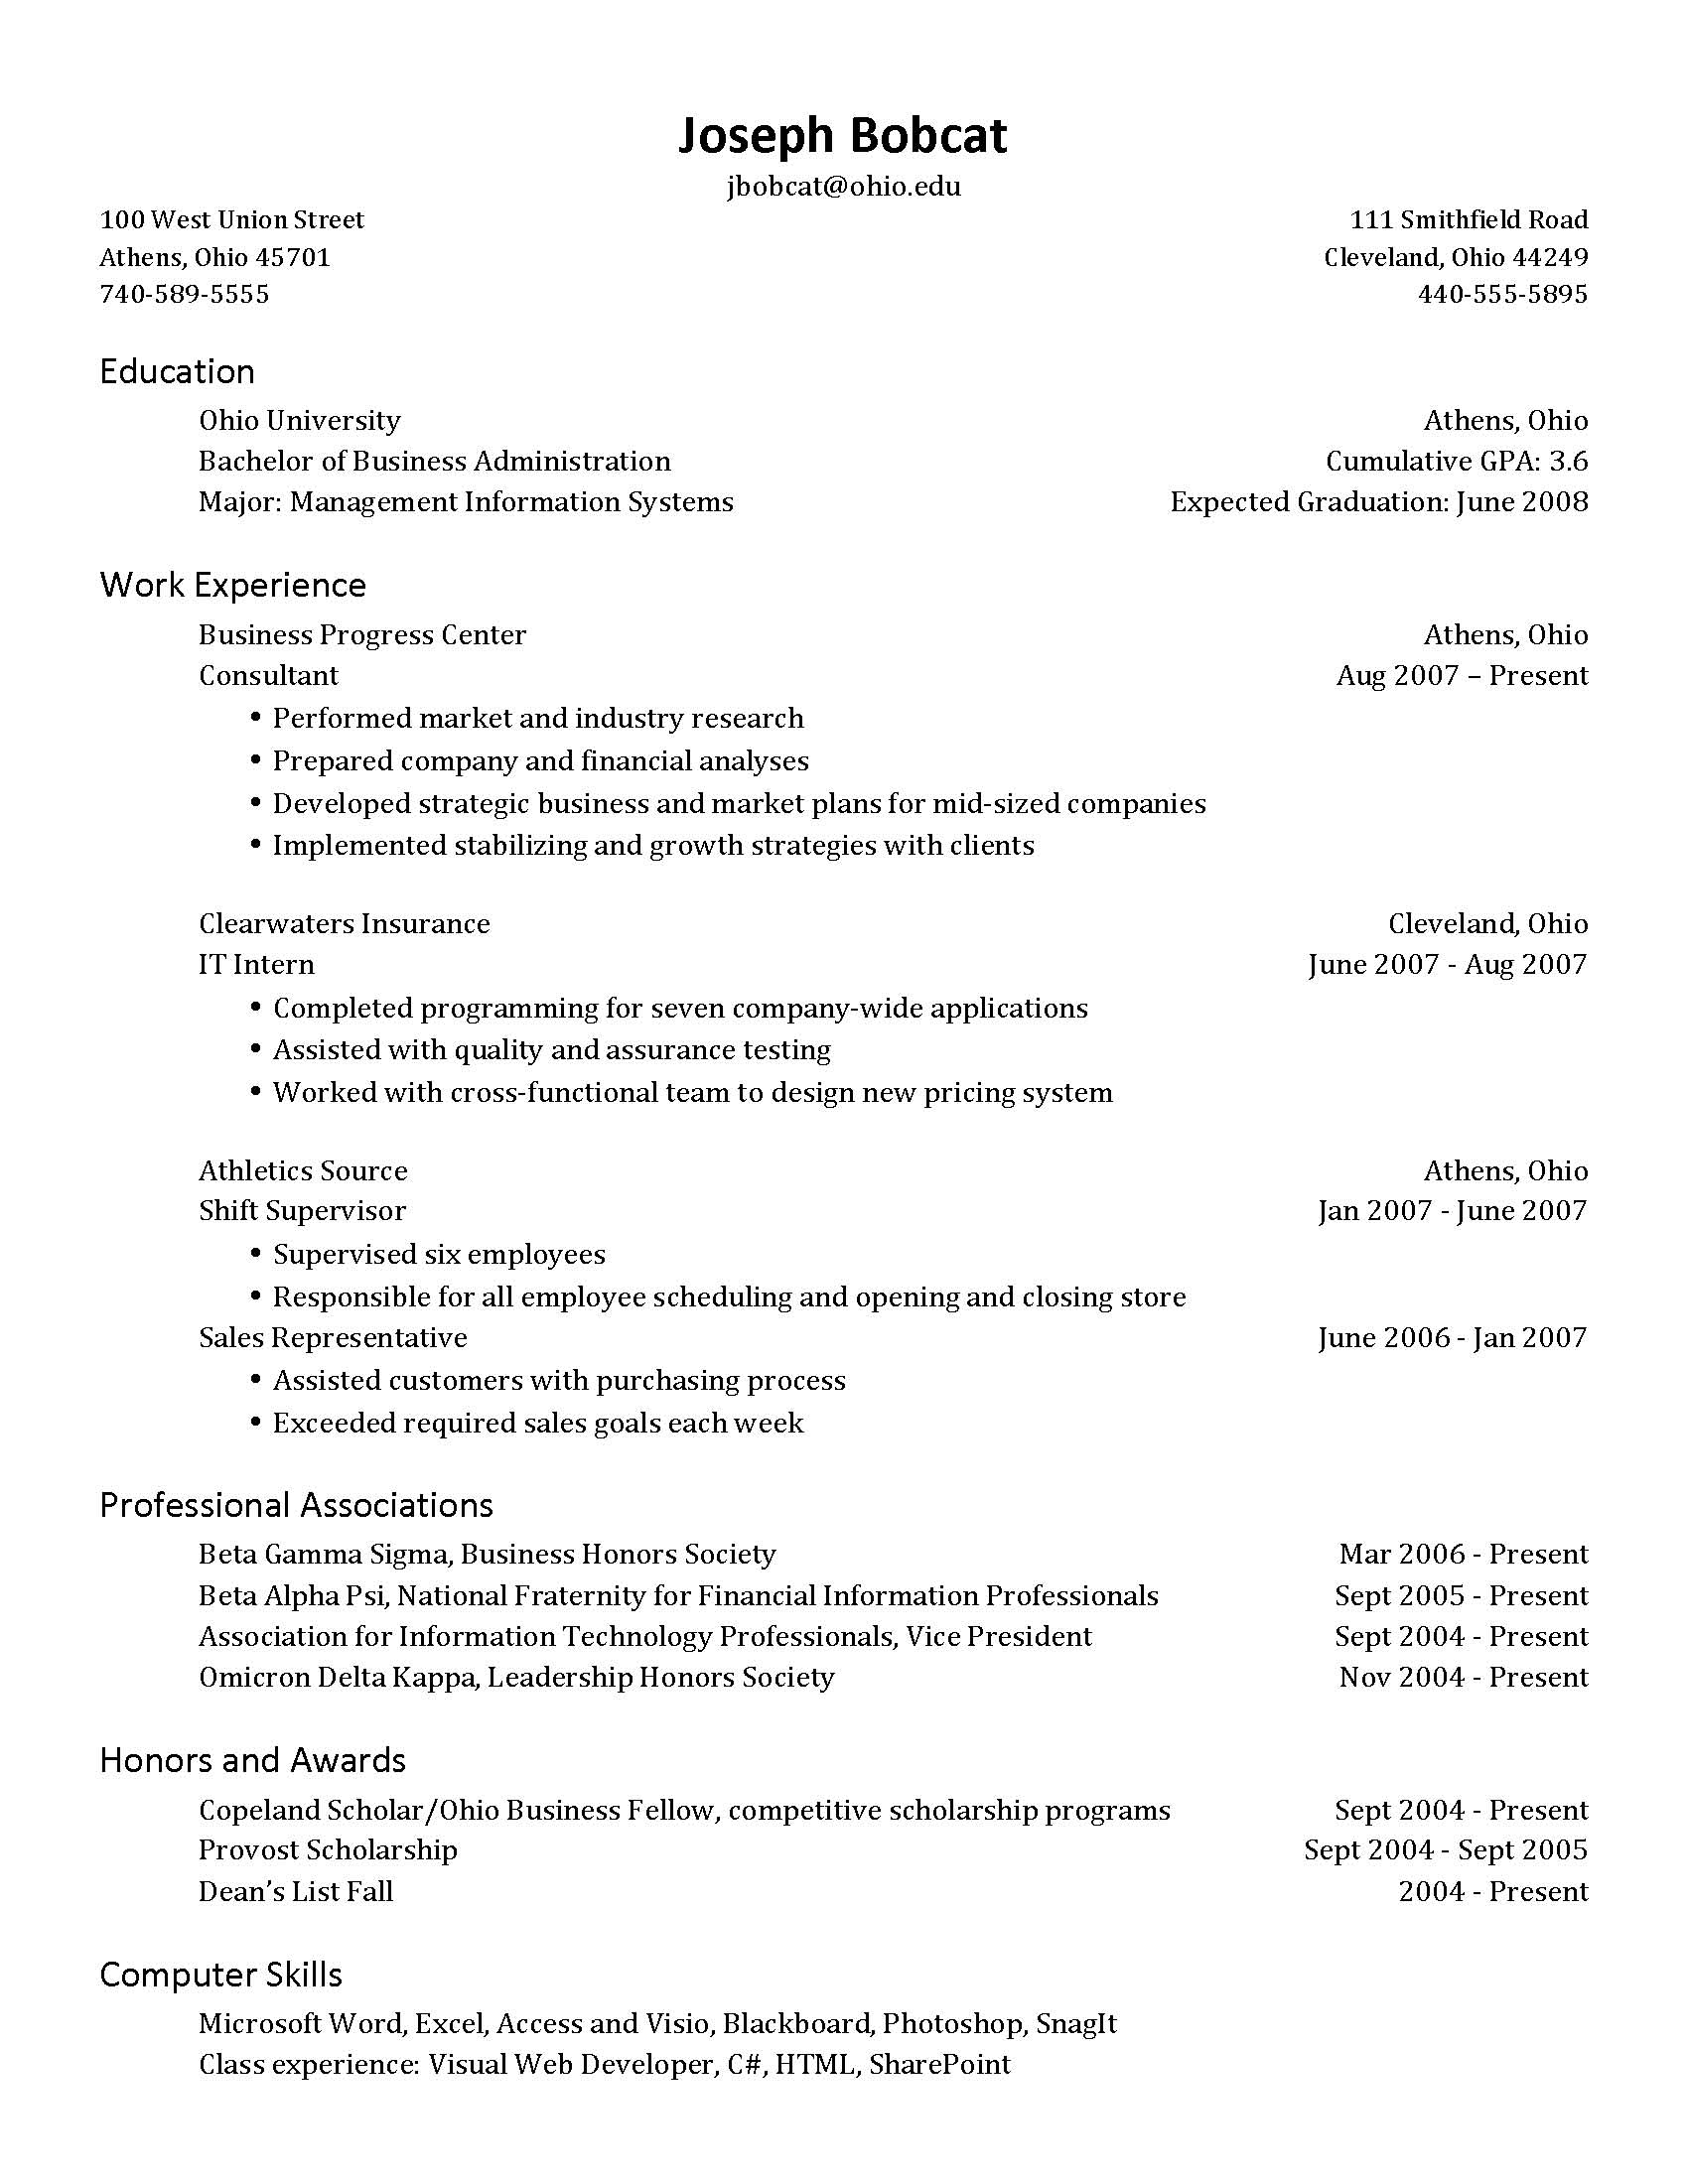 to put anticipated graduation date on resume free examples information technology Resume Anticipated Graduation Date On Resume Examples